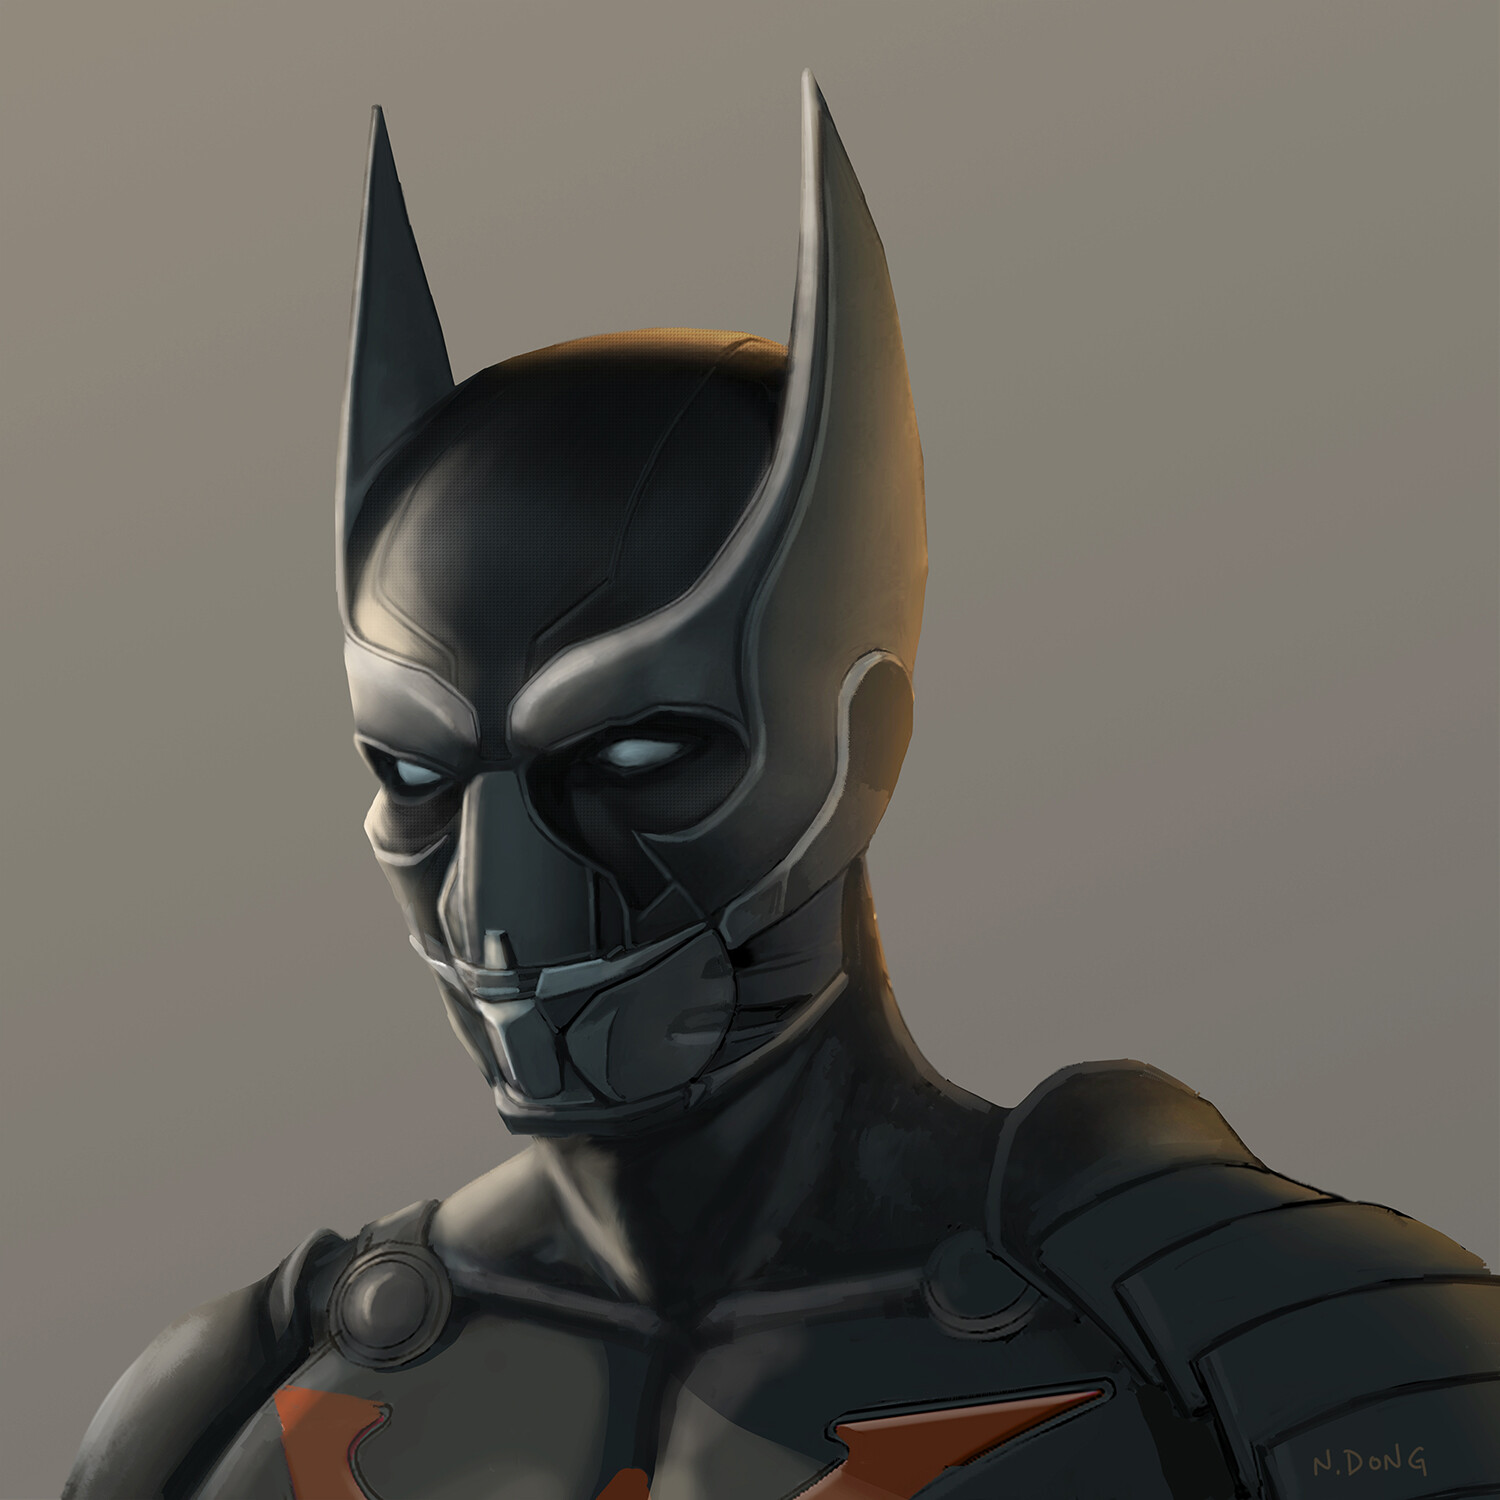 Batman mask designed for Batman Beyond as a live action film.